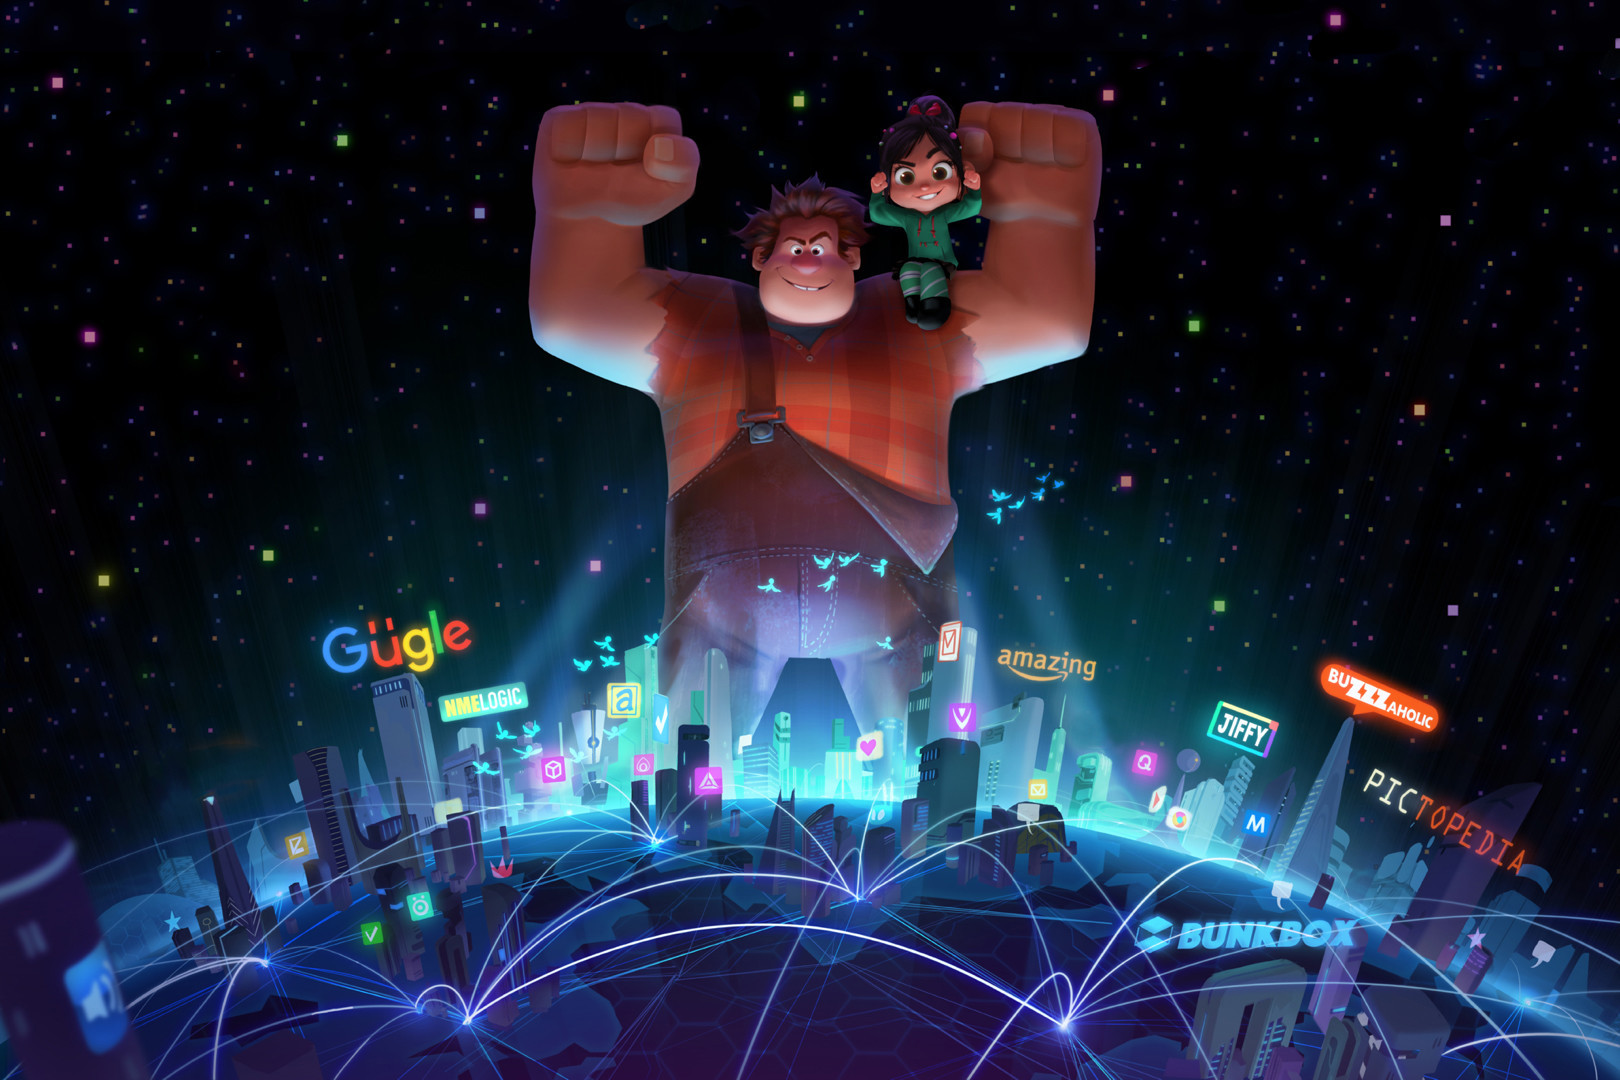 """Ralph Breaks the Internet: Wreck-It Ralph 2"" leaves the arcade and heads into the Internet."